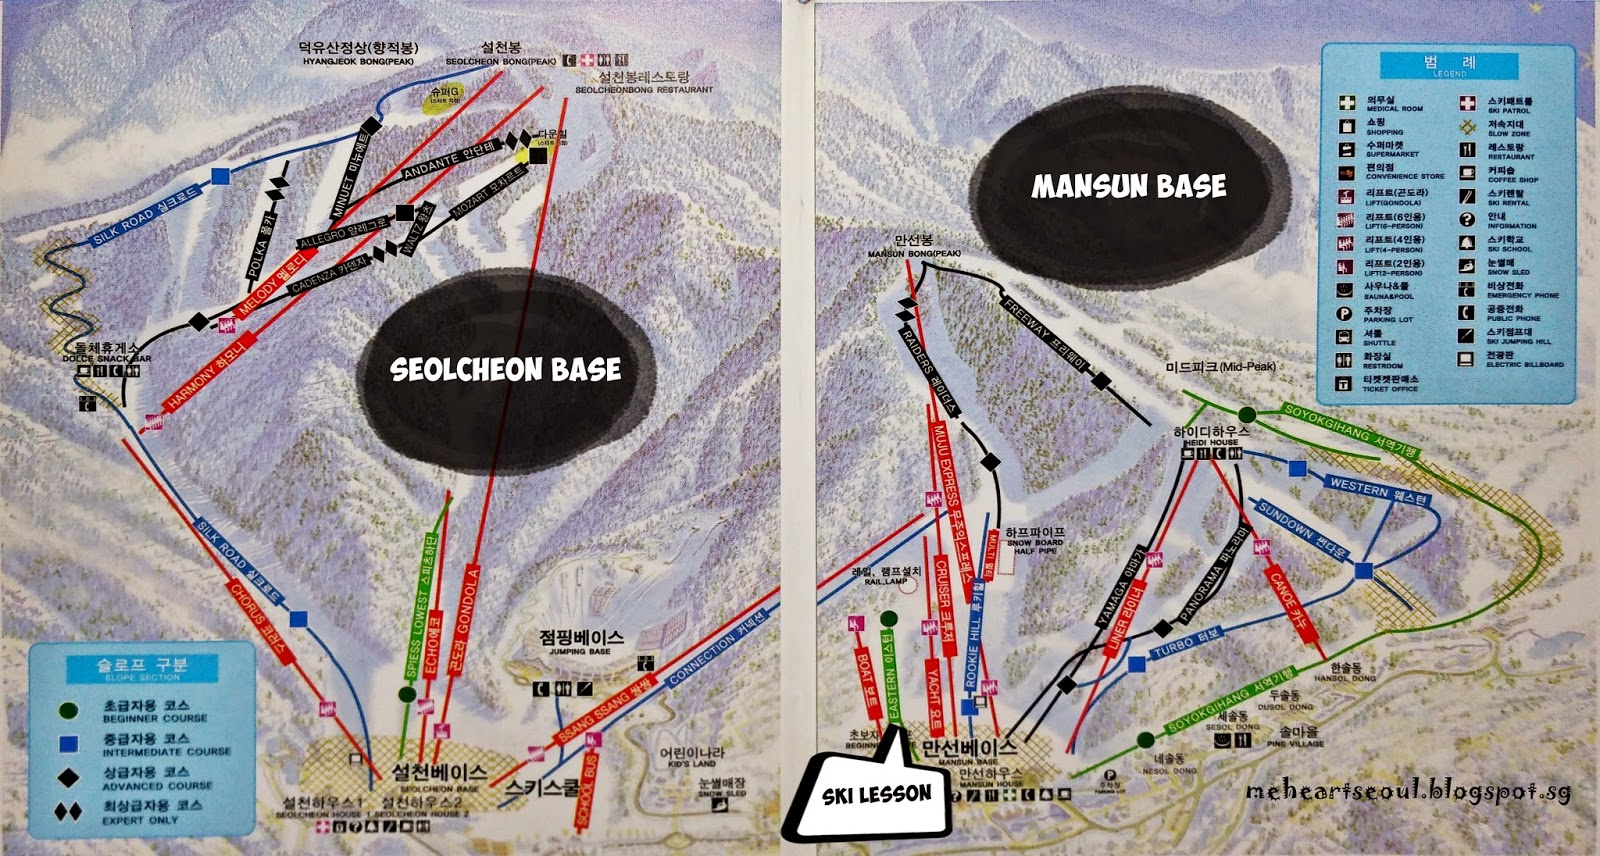 et's hit Ski Slope and Slide down the Muju Snowy Hill~! | meheartseoul.blogspot.com